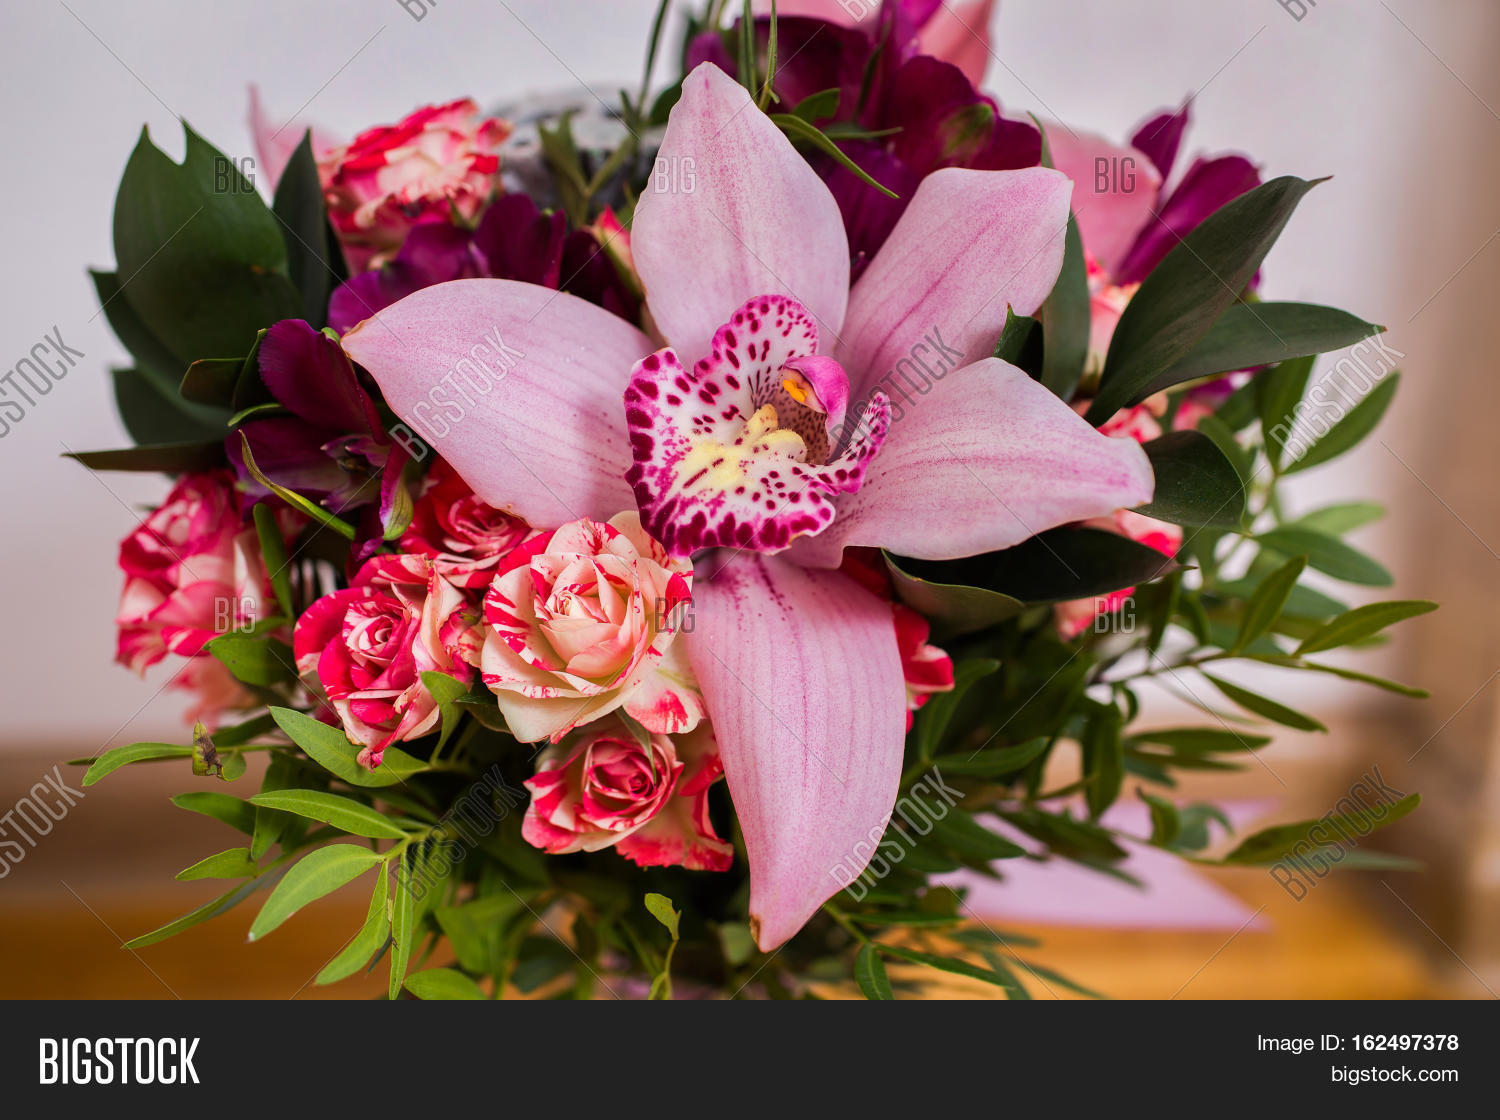 Wedding Flowers Image Photo Free Trial Bigstock